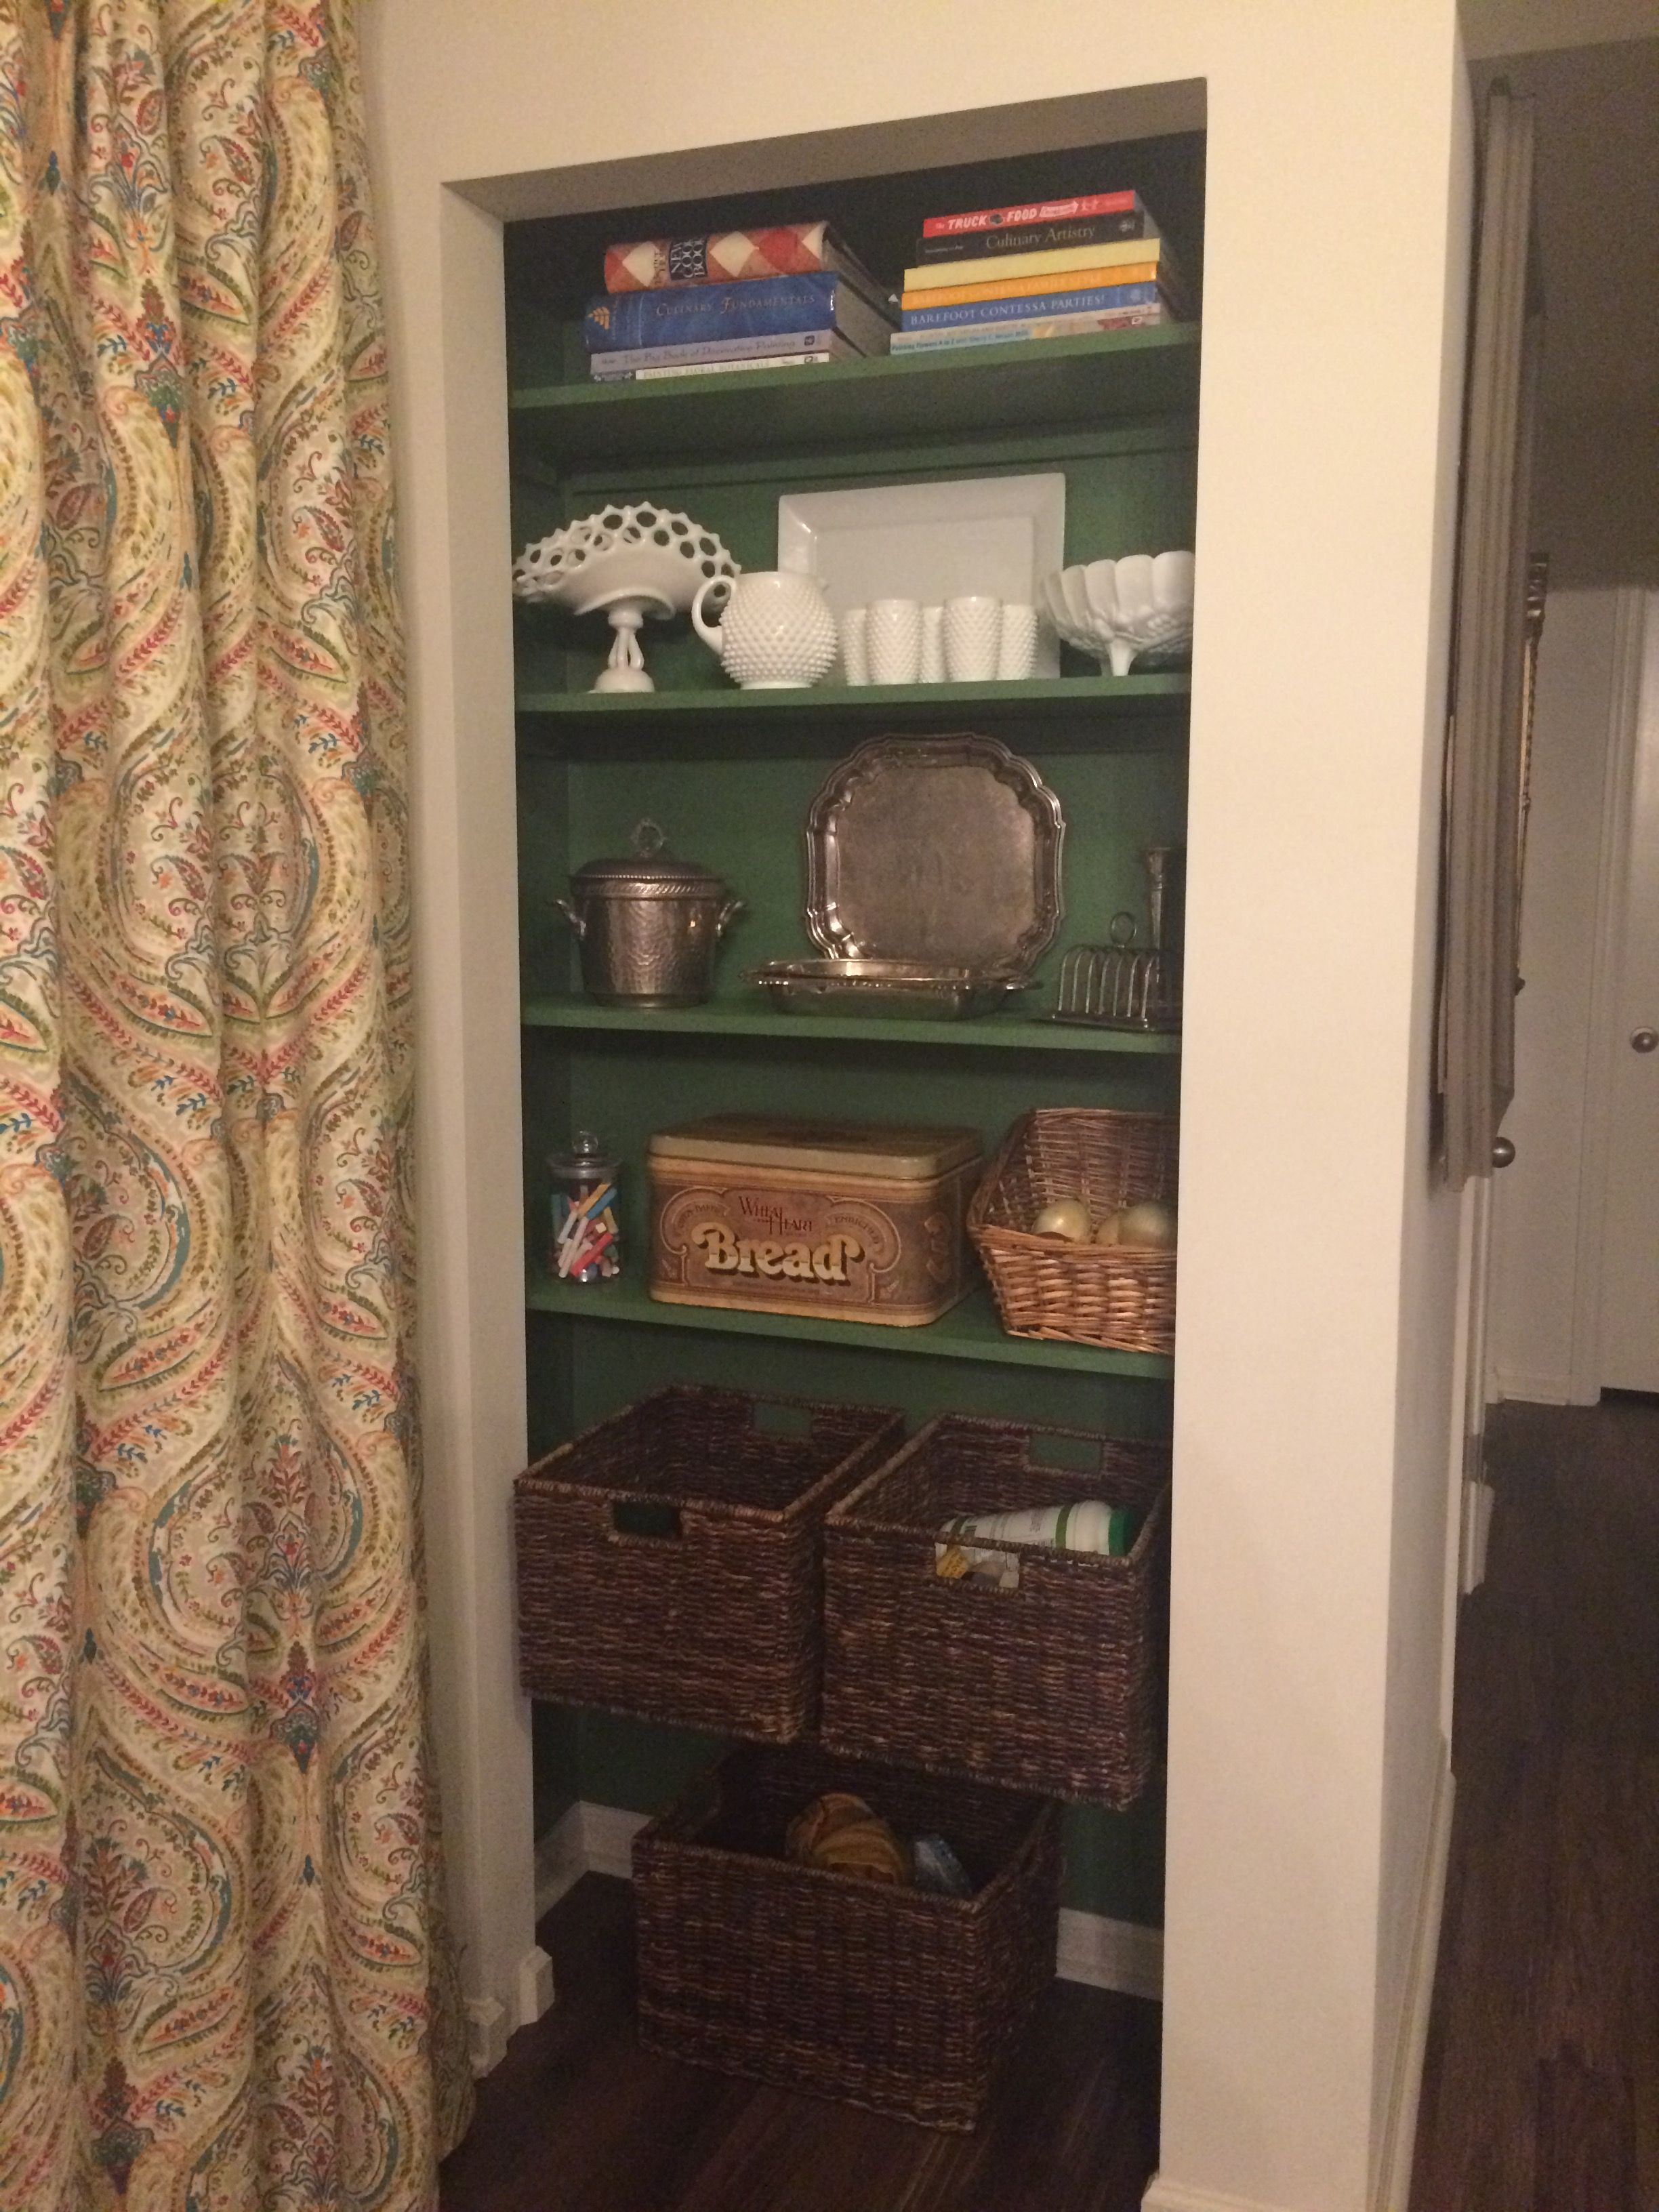 Former tiny pantry is now a built in. Removed bi-fold doors & wire shelving. Added wood shelving & paint.